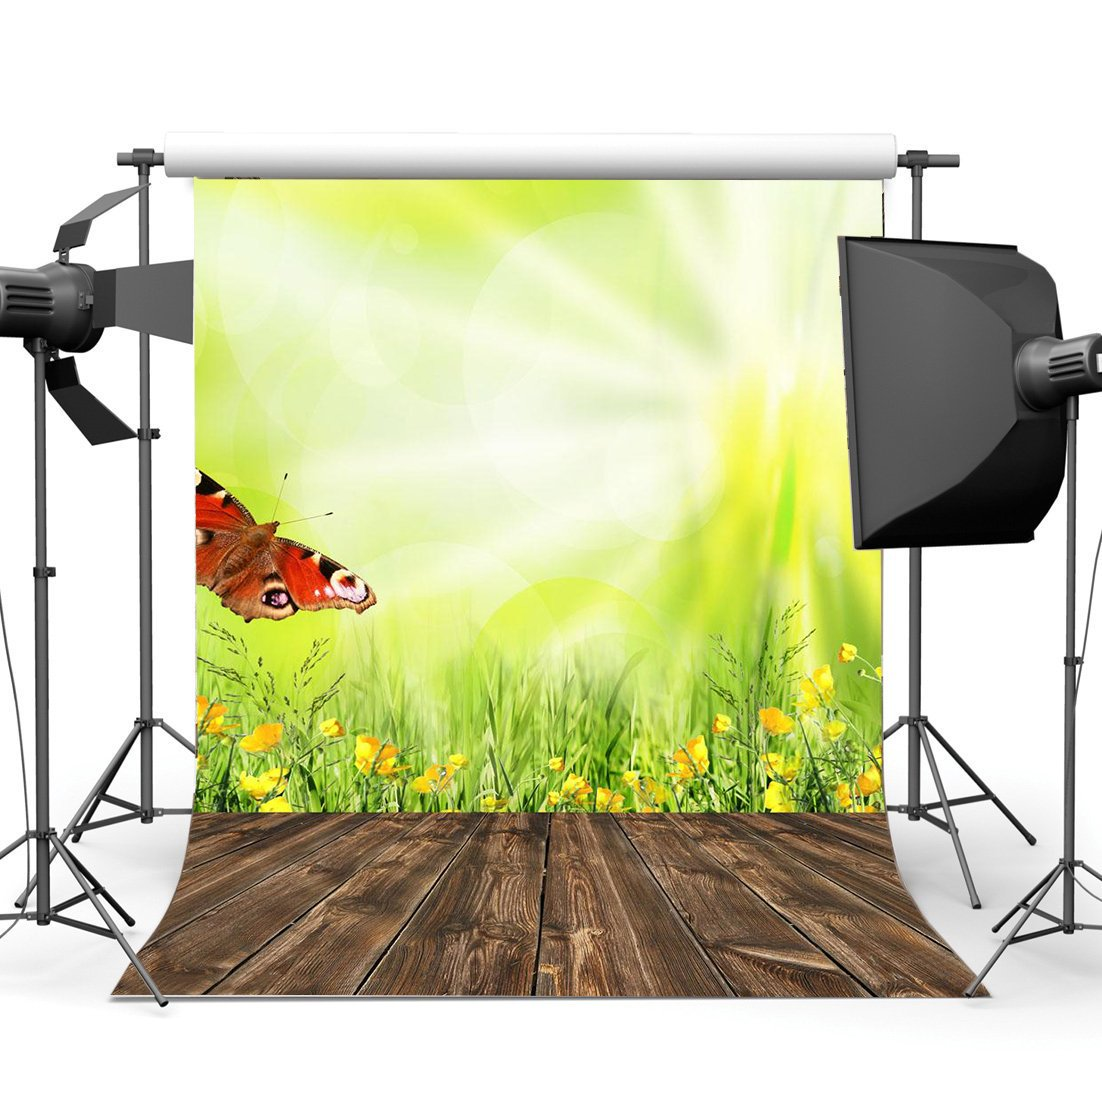 Nature Spring Backdrop Butterfly Blooming Fresh Flowers Green Grass Blurry Wallpaper Field Wood Floor Photography Background-in Background from Consumer Electronics